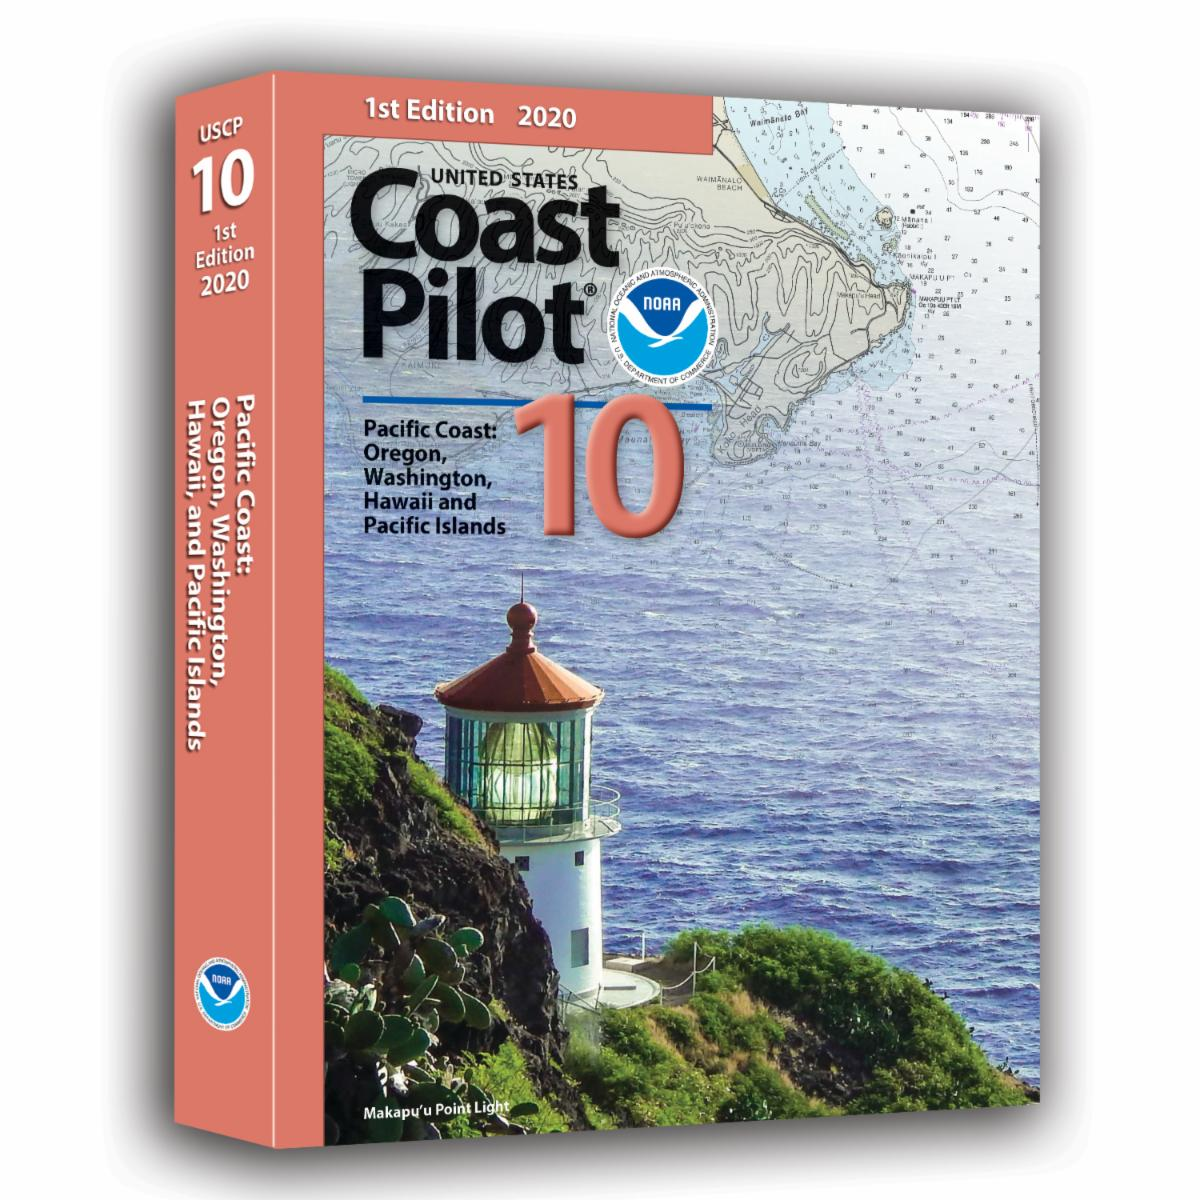 United States Coast Pilot 10 booklet cover.